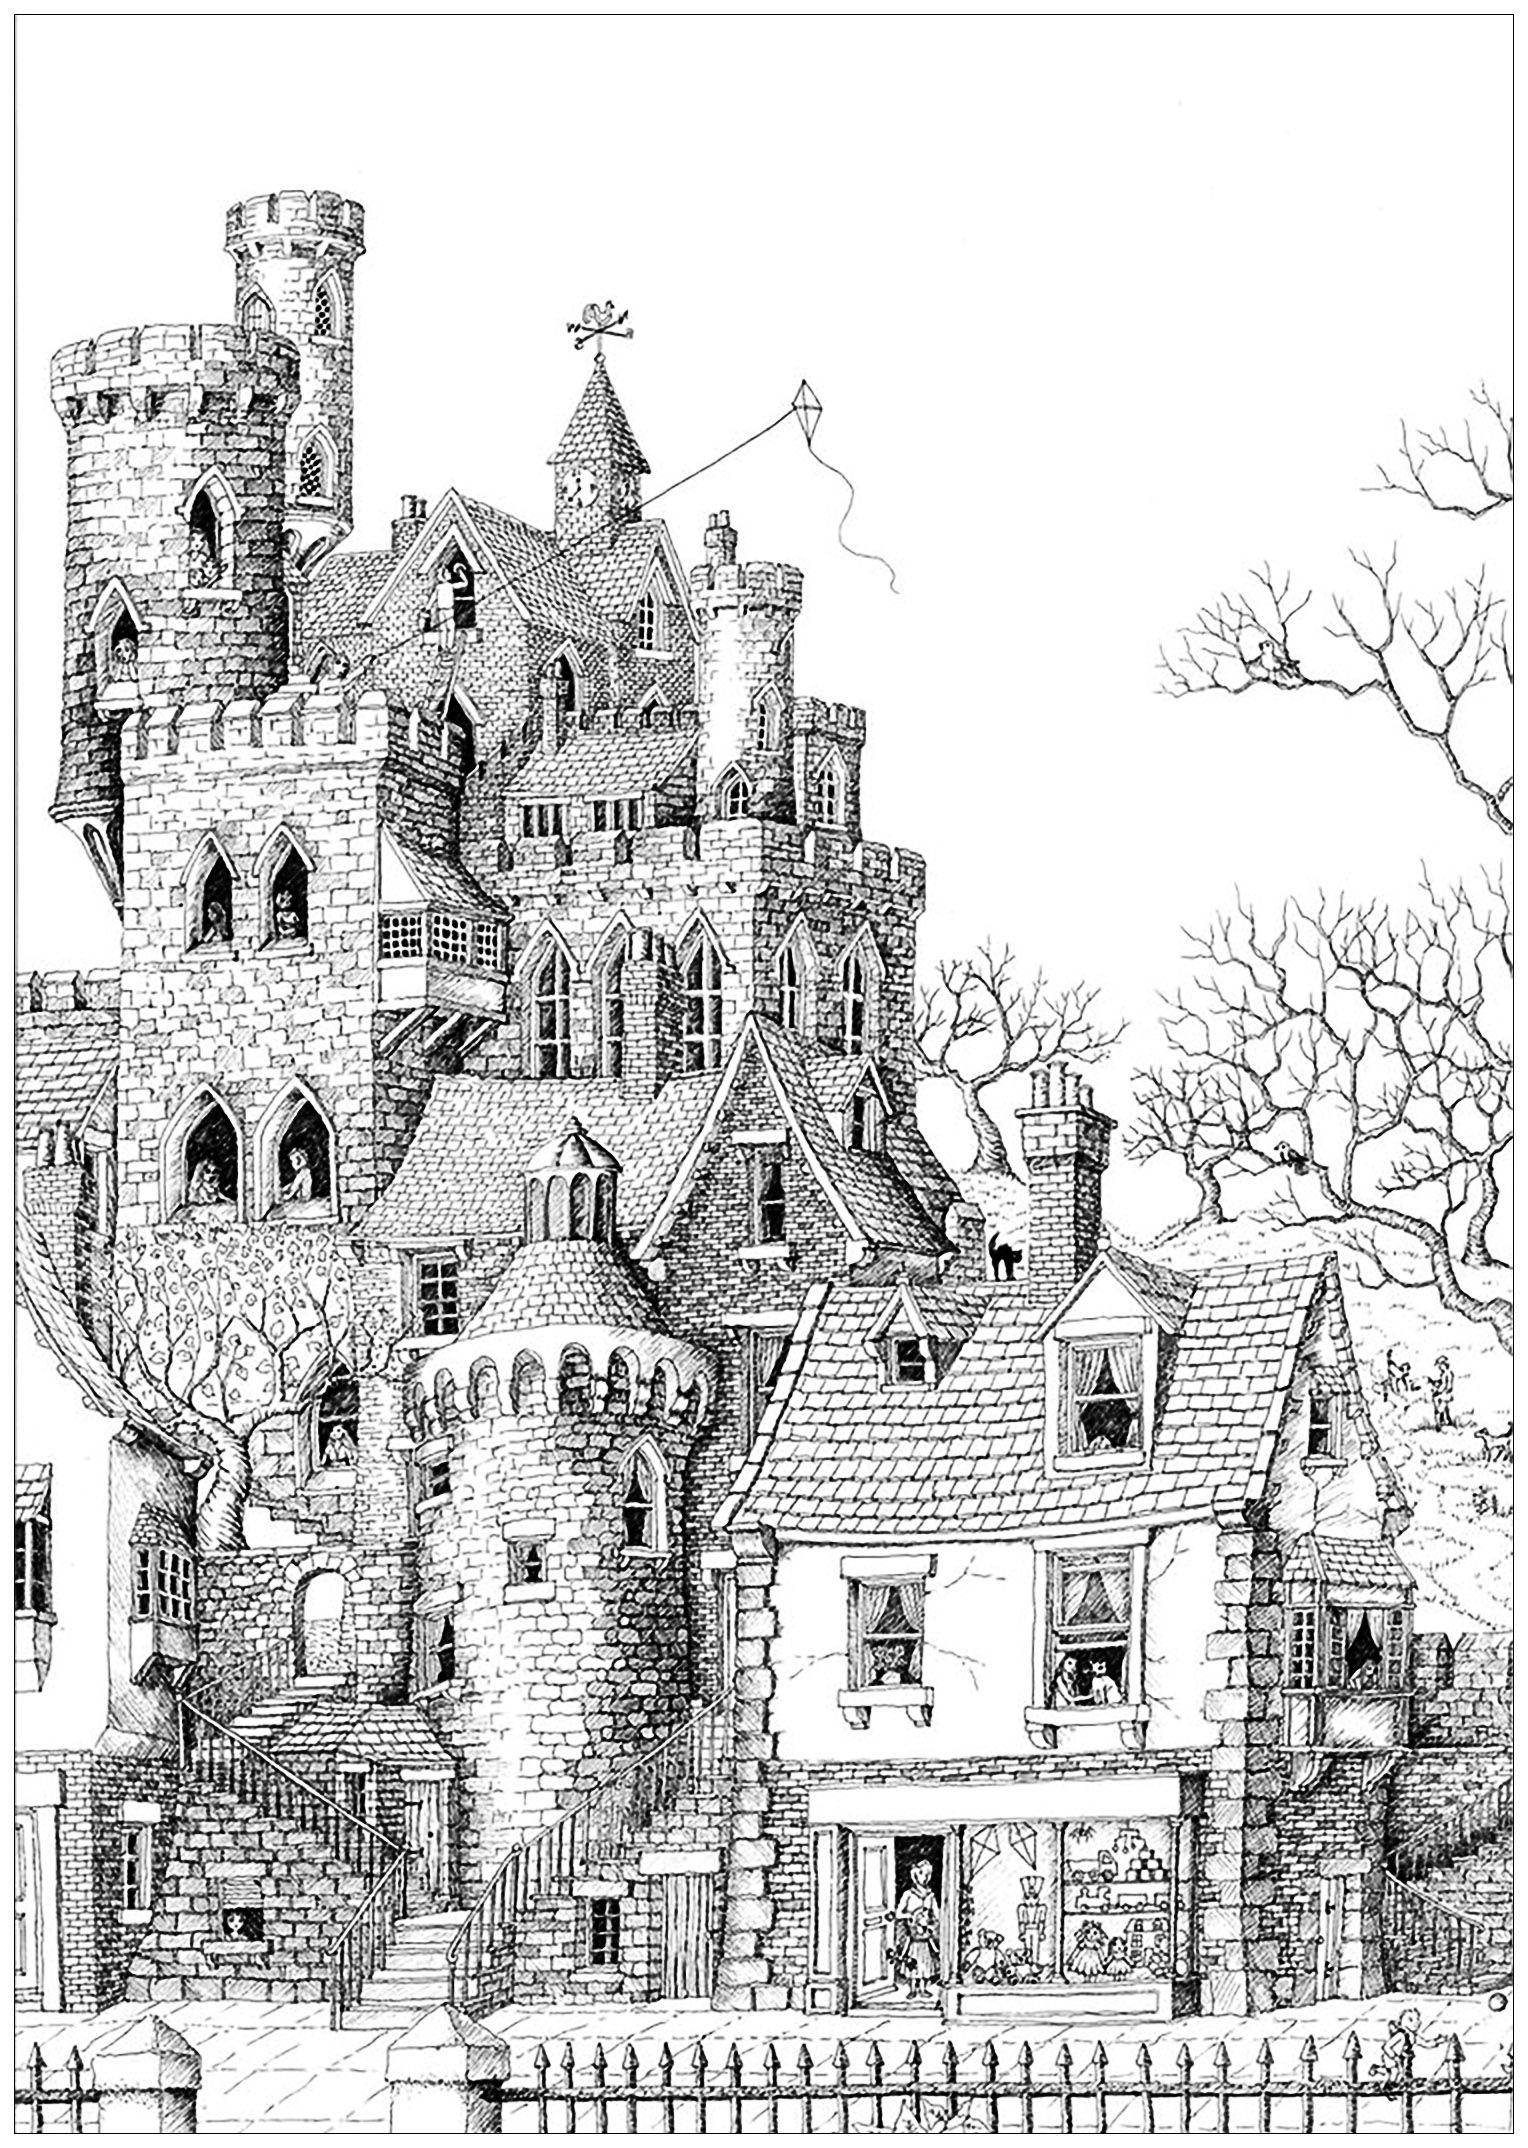 Free coloring pages castle - An Impressive Castle In A Typical Village From The Gallery Architecture Living